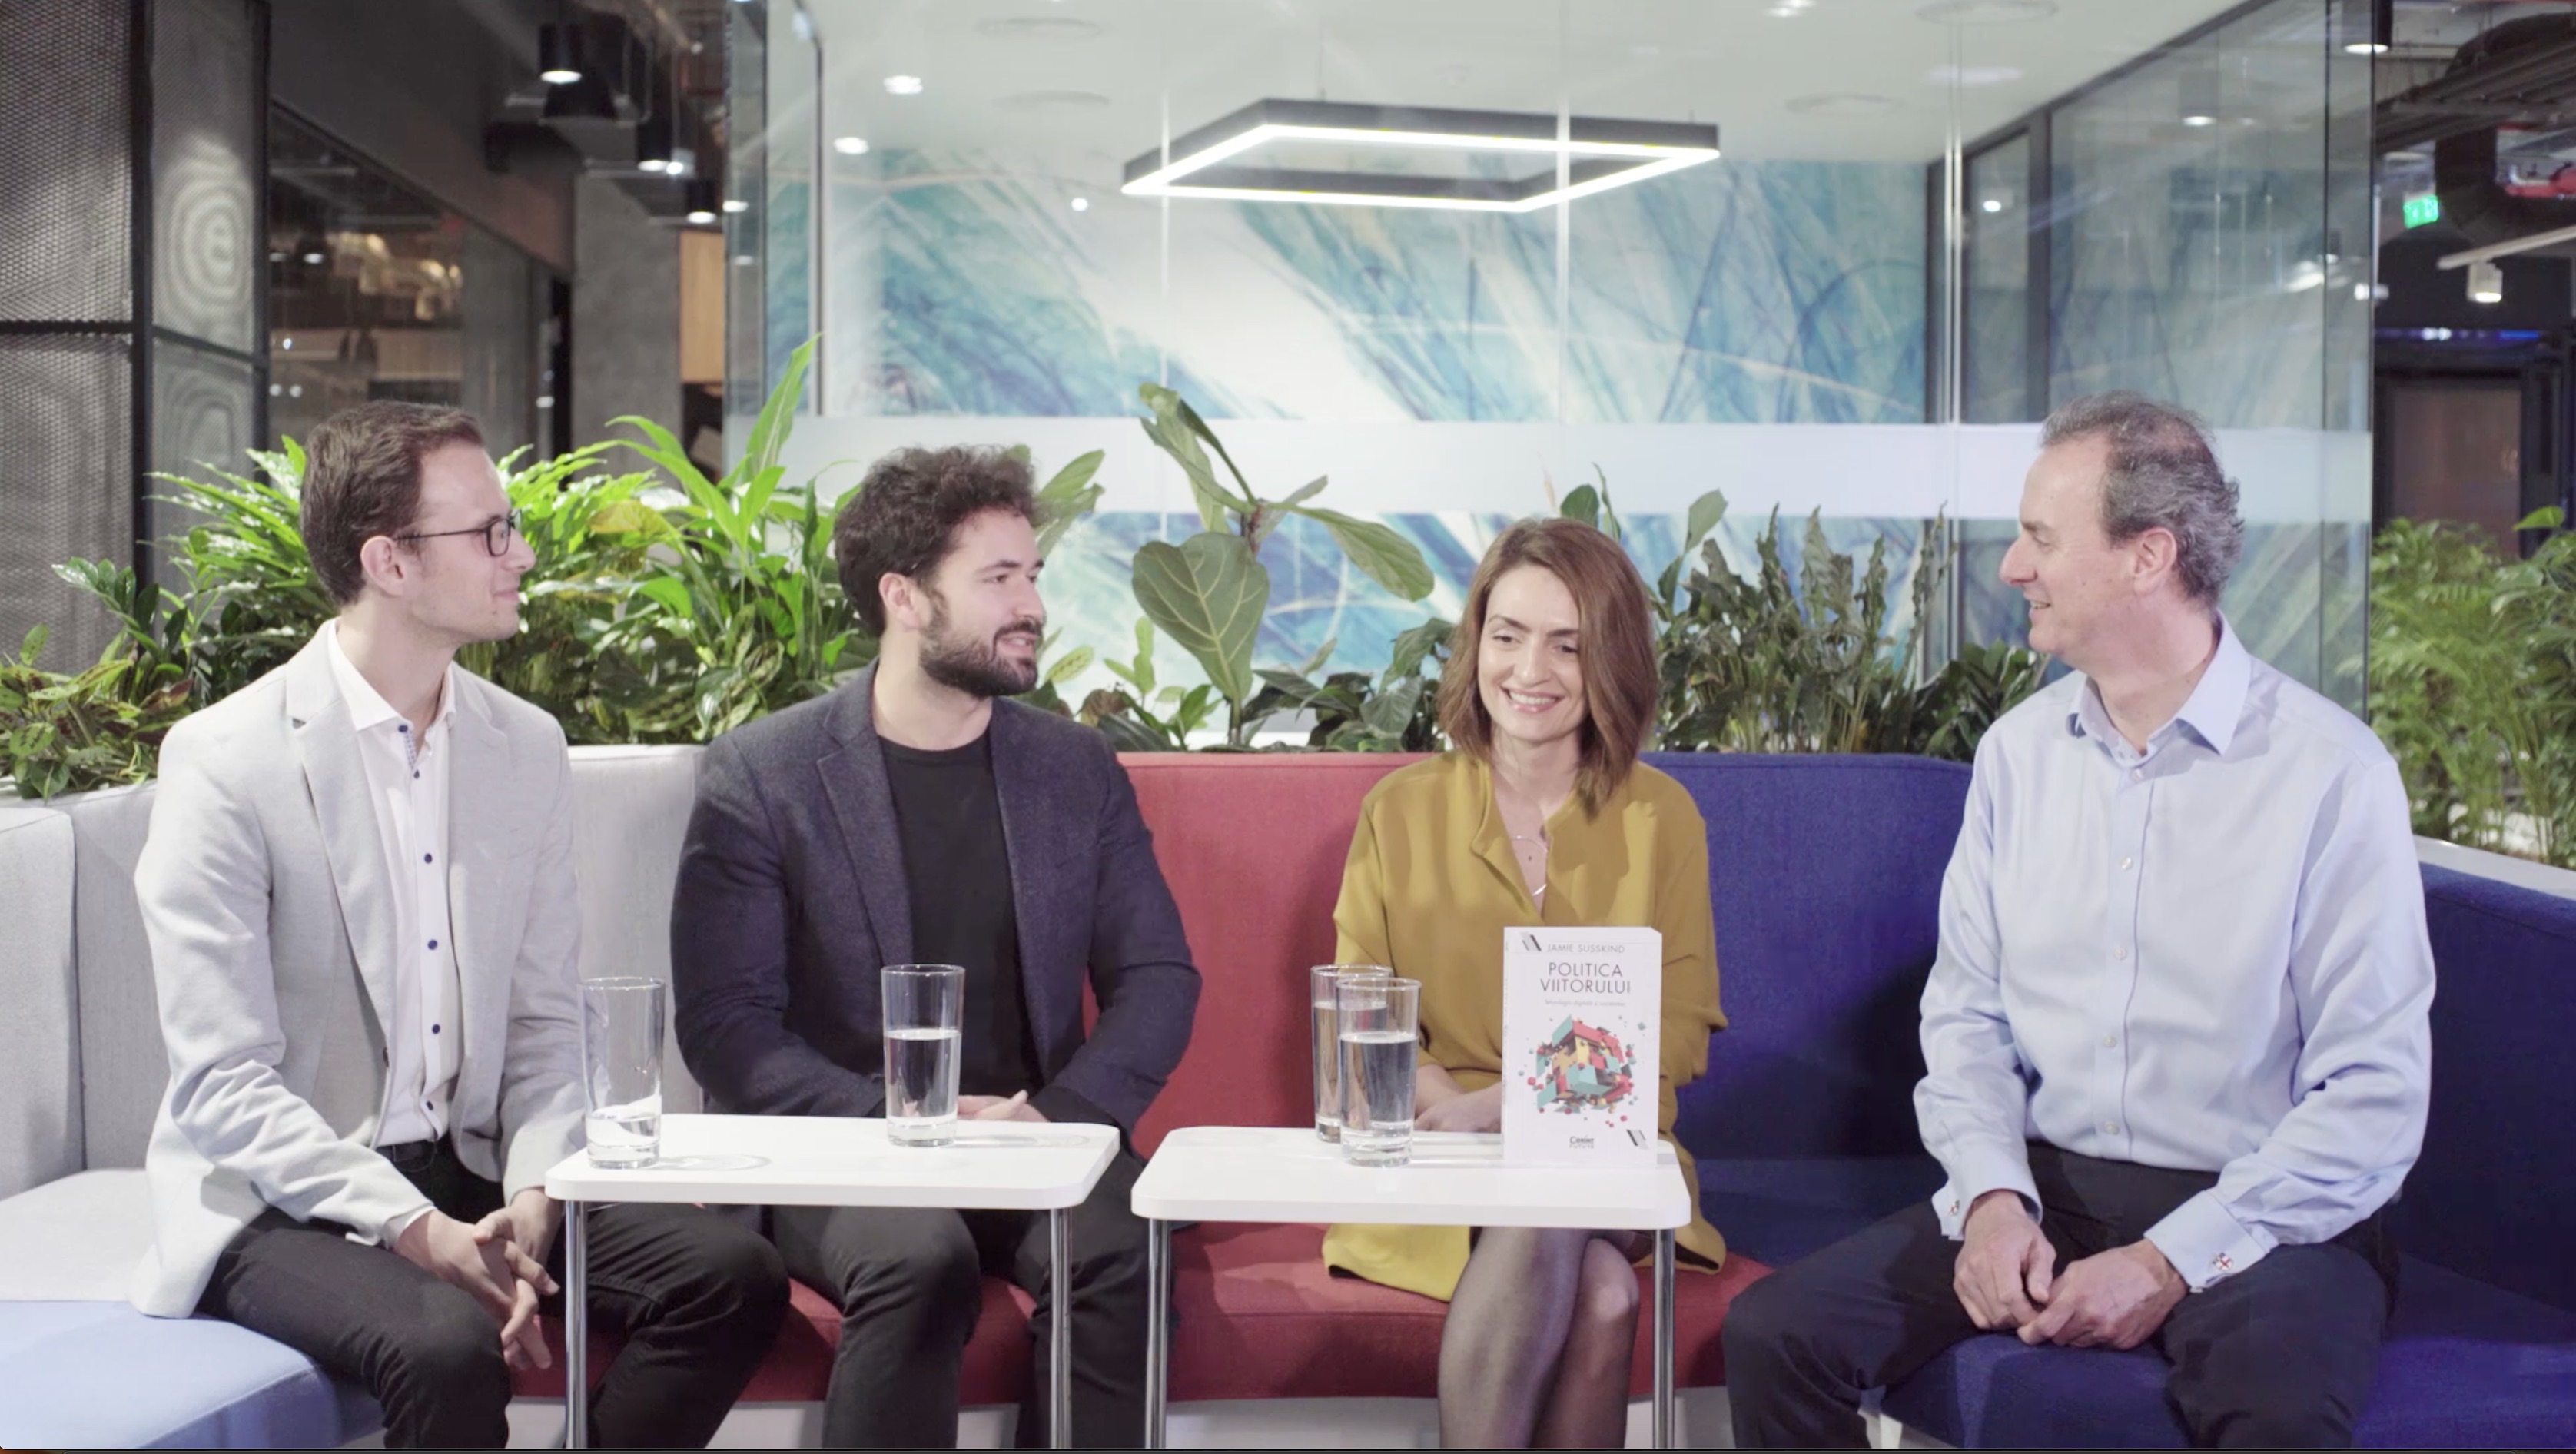 The Future of Work: A UiPath Conversation with Jamie Susskind and Google